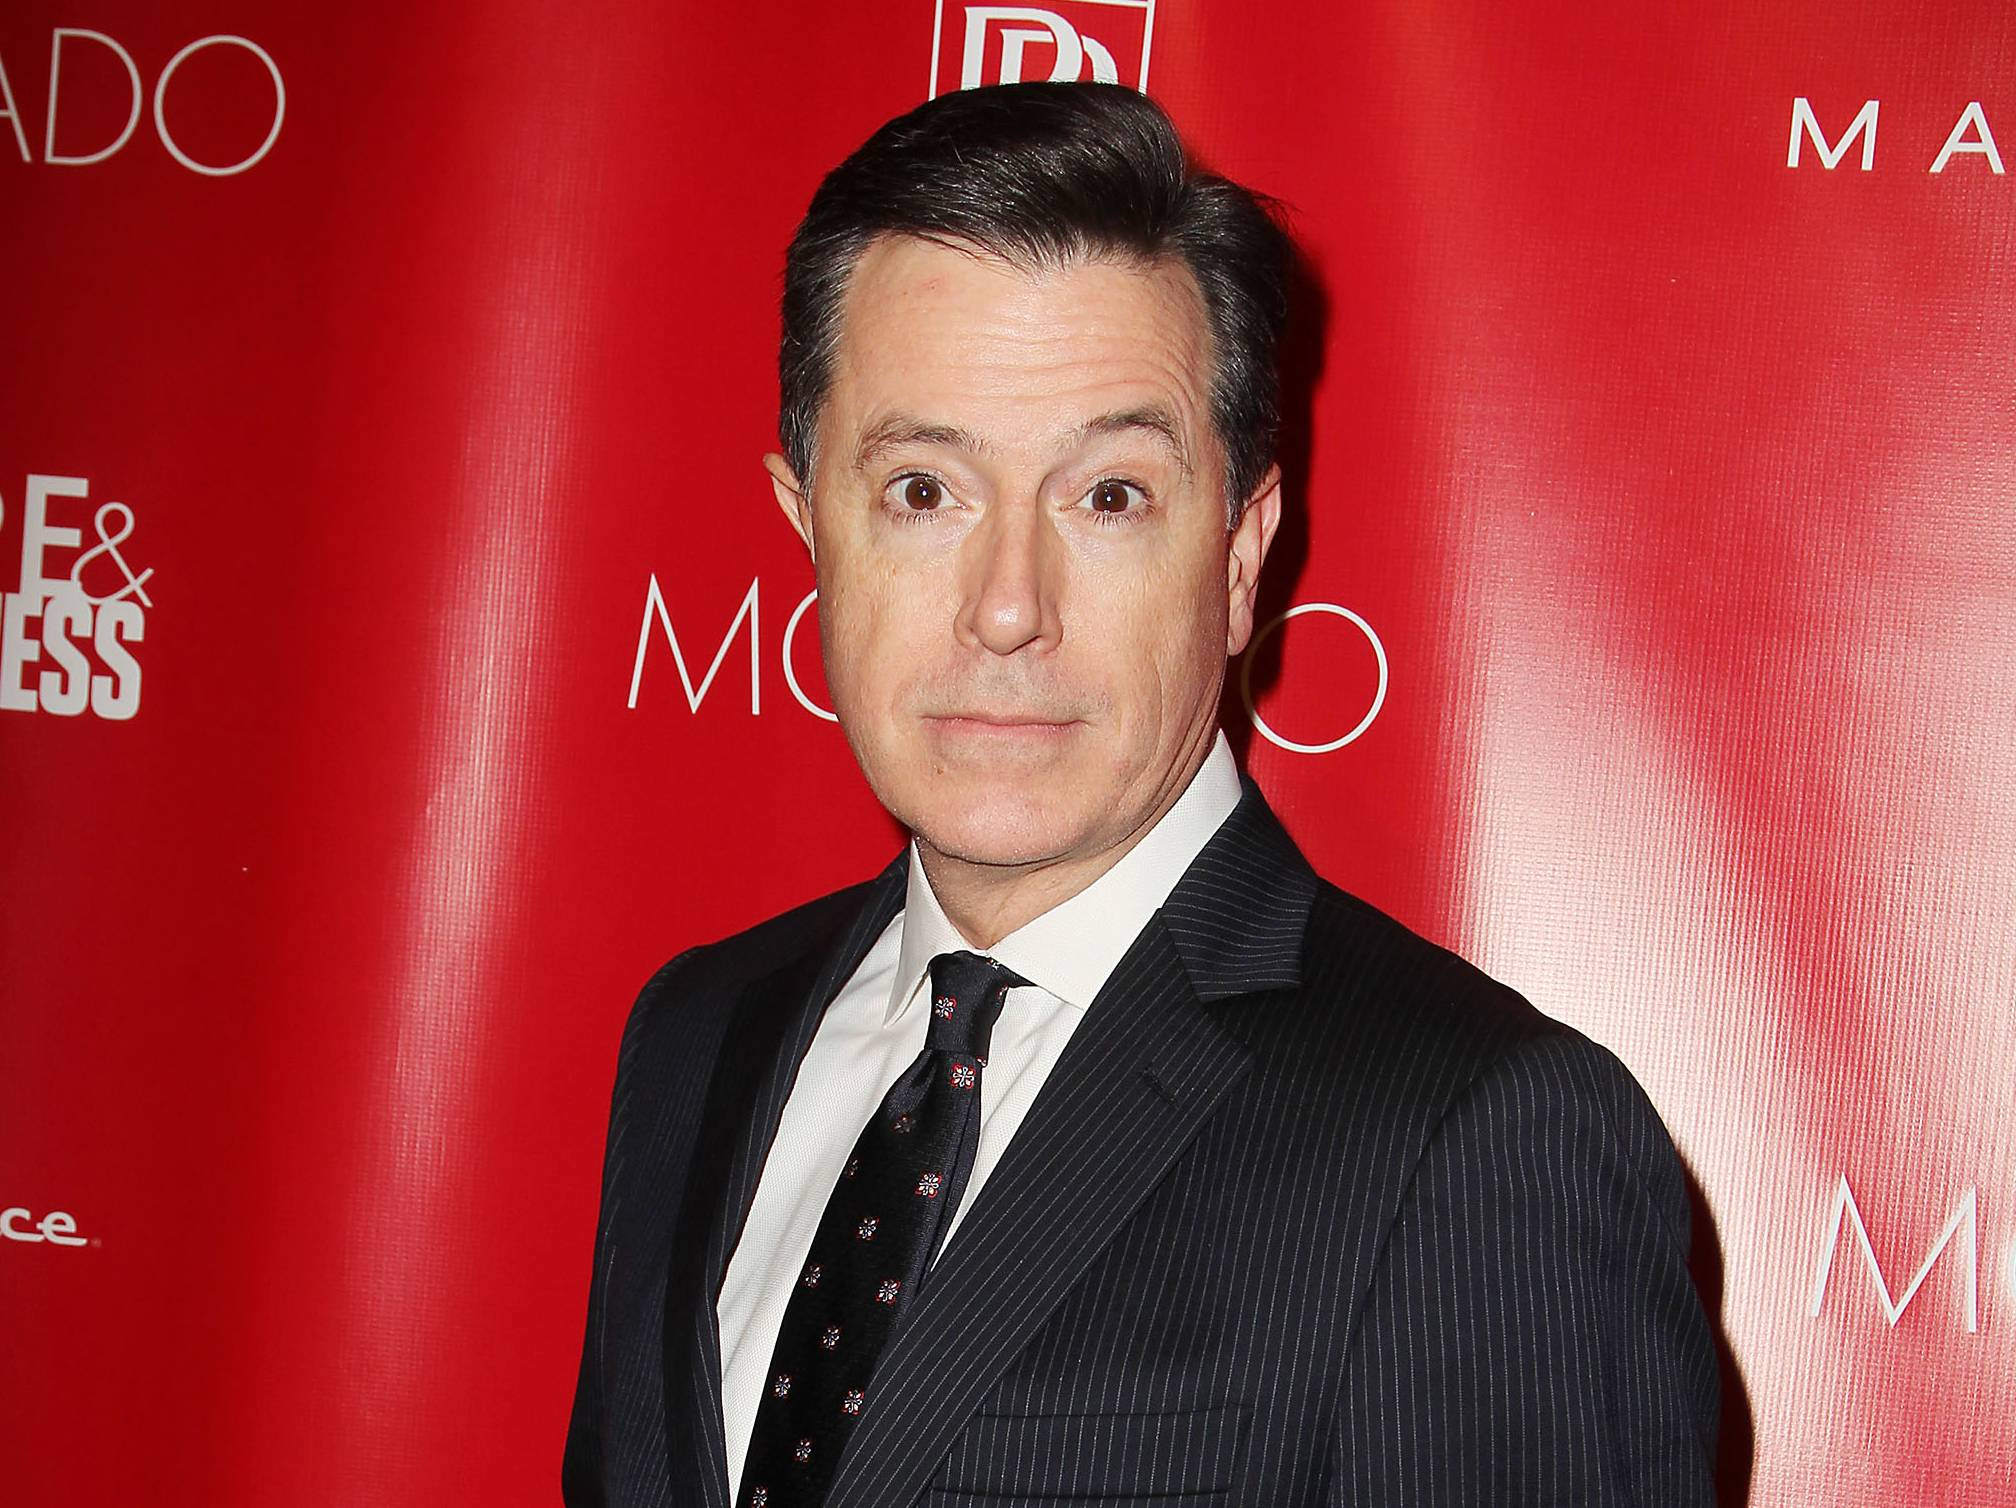 "Stephen Colbert assailed Amazon.com on his Comedy Central program Wednesday for delaying shipments for some Hachette books, including for Colbert's ""America Again,"" and removing the pre-order option for Edan Lepucki's ""California"" and other upcoming works."